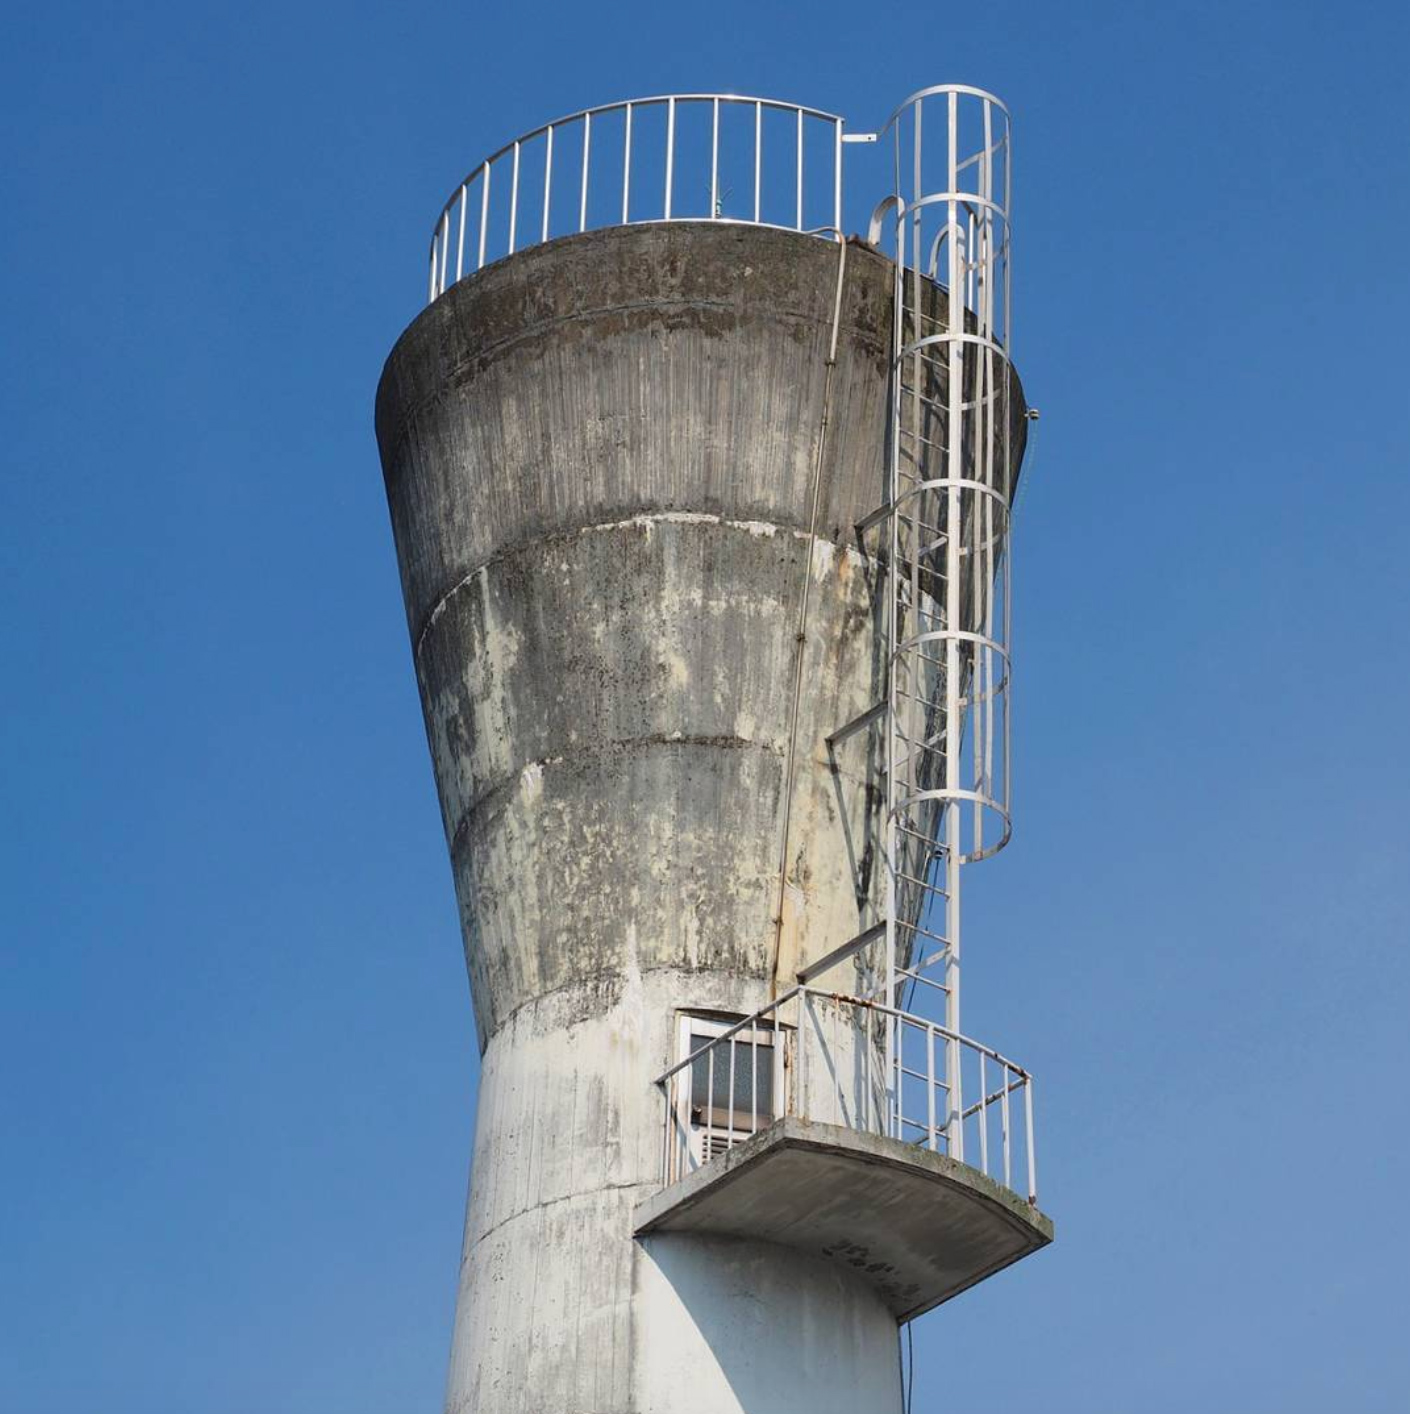 Instagram Account Dedicated to Japanese Water Towers (12 pics)